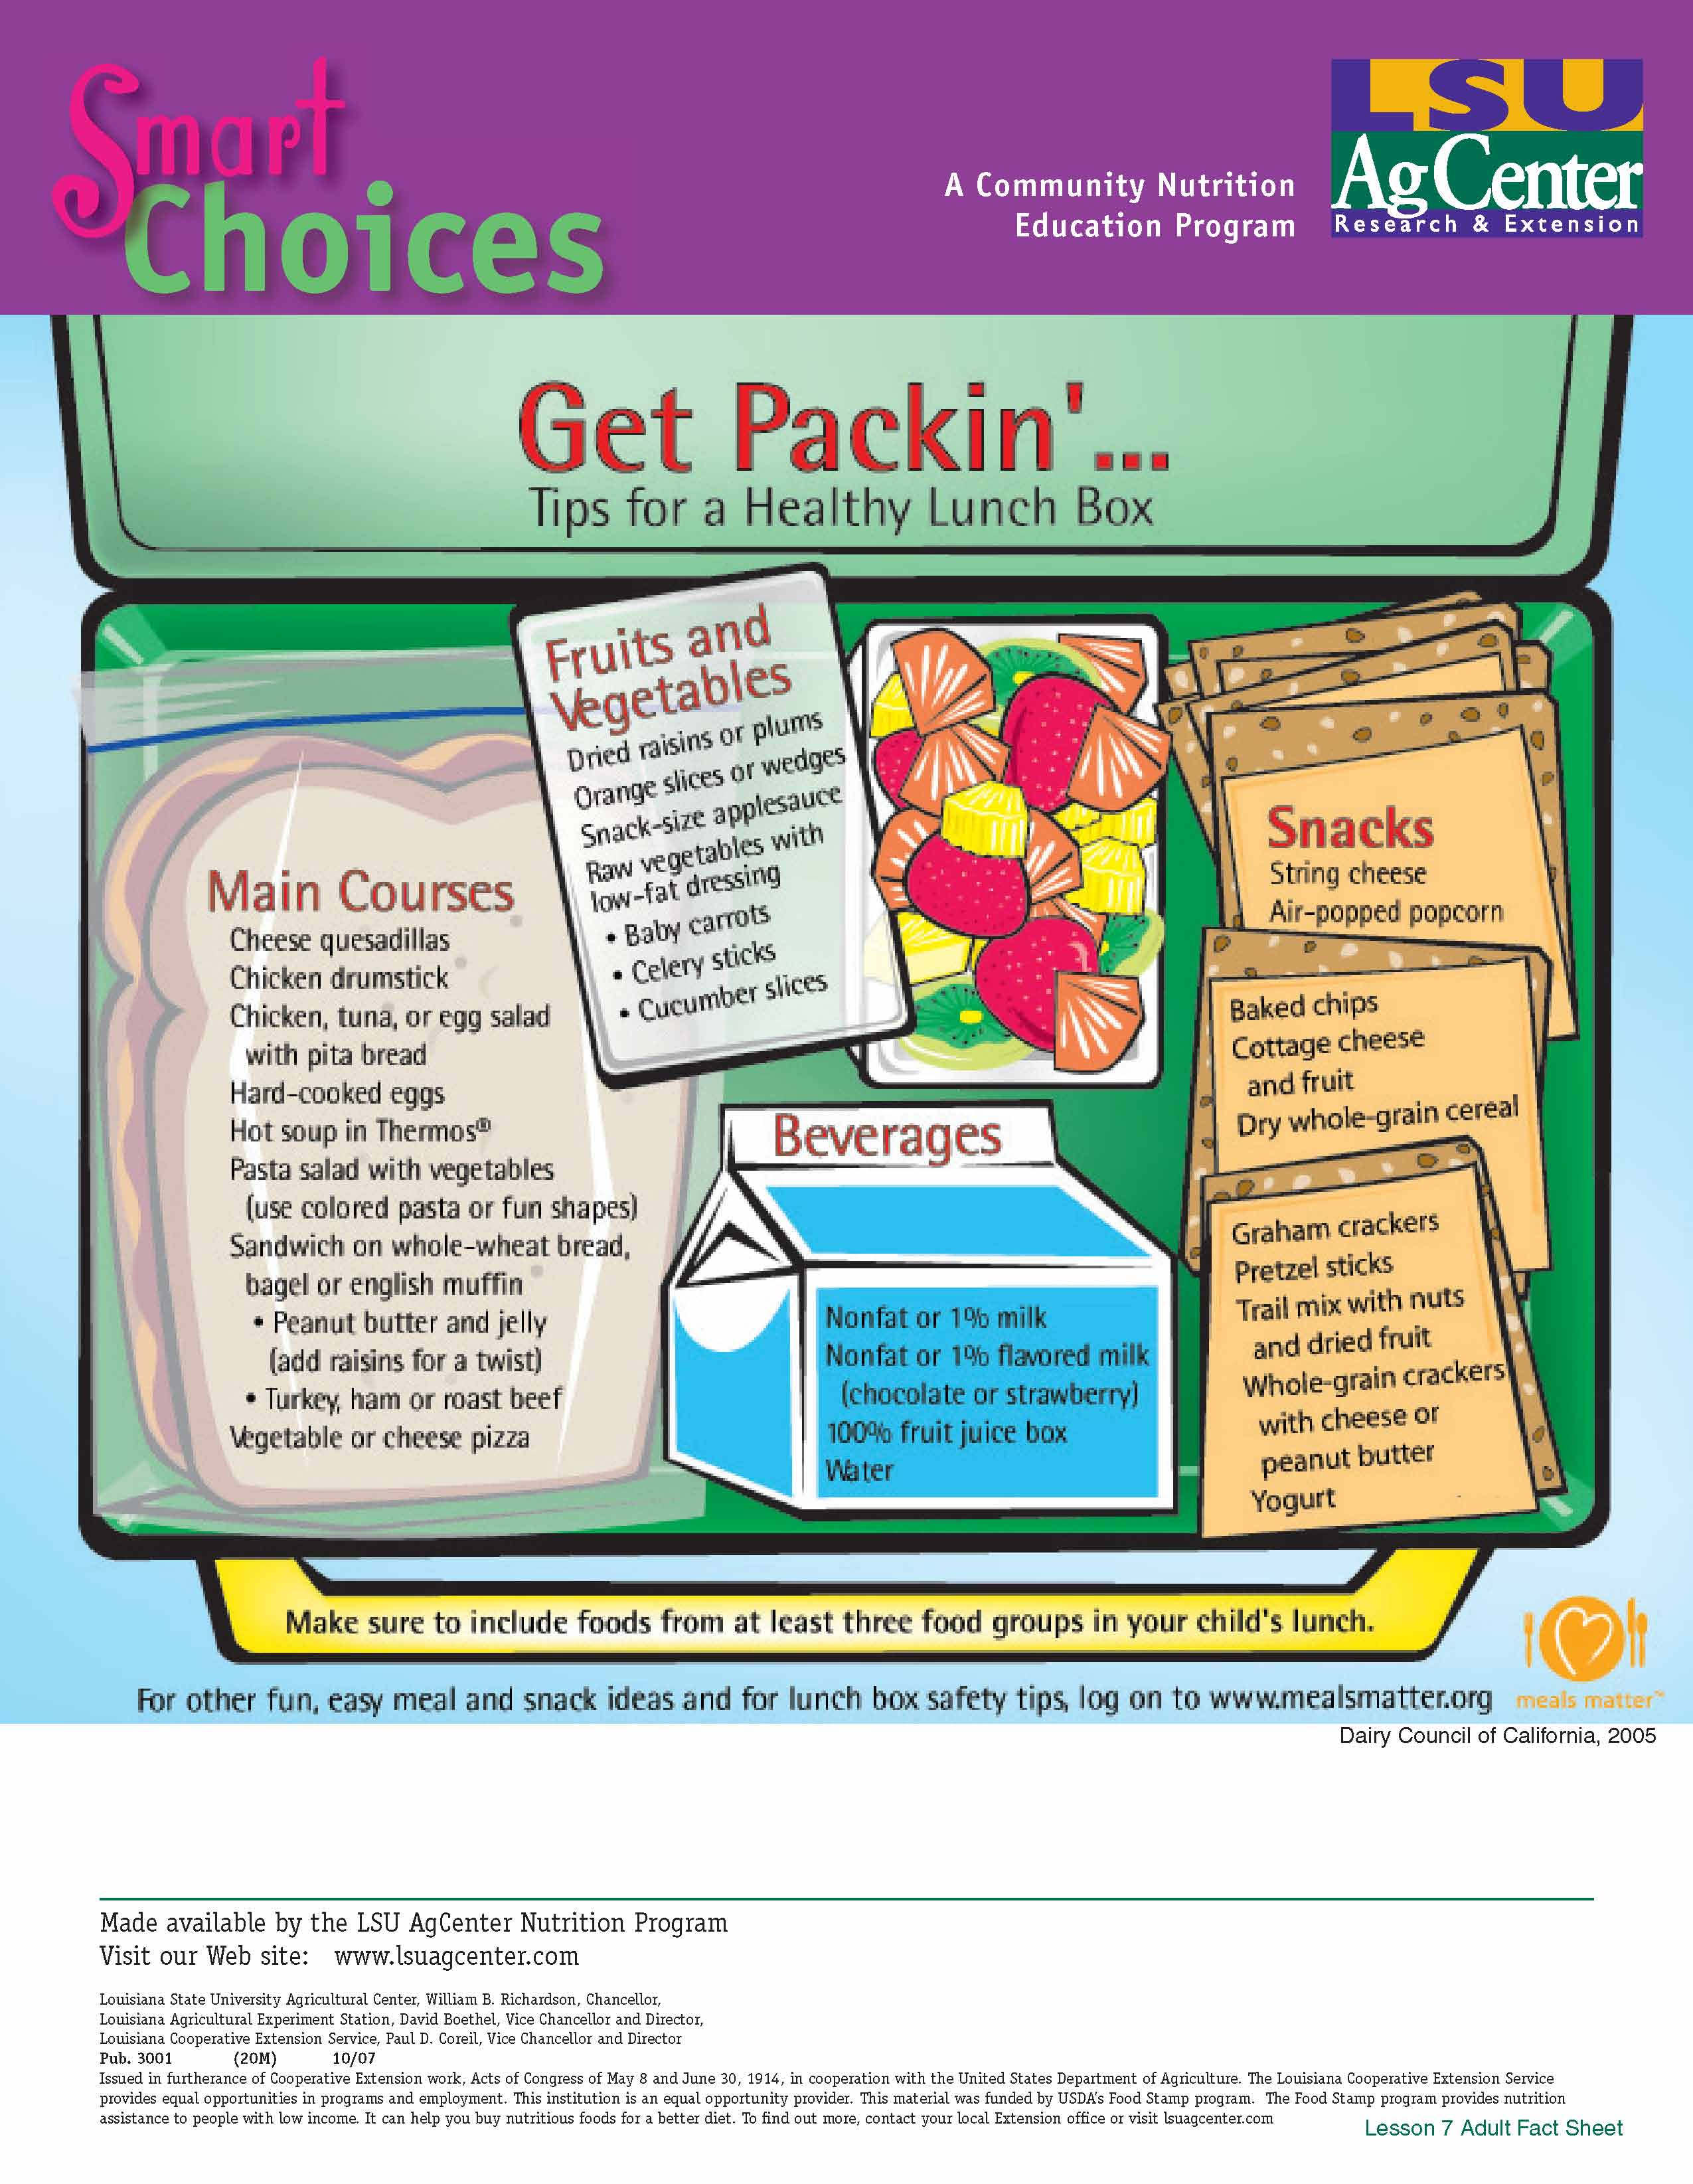 Smart Choices: Get Packing…Tips for a Healthy Lunch Box